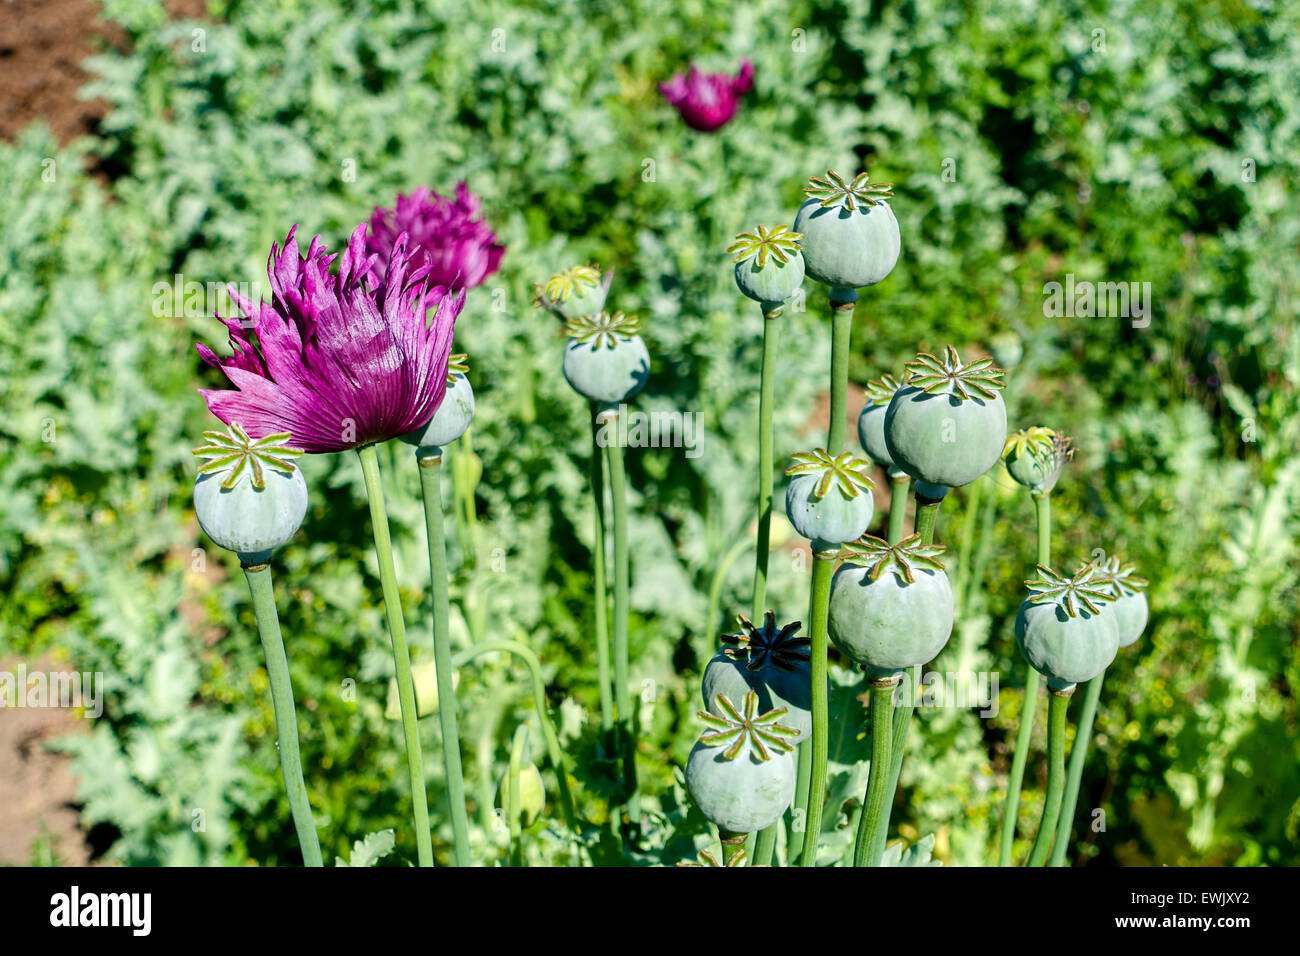 Heroin opium poppy stock photos heroin opium poppy stock images poppy flowers and seed heads opium drugs war on drugs heroin mightylinksfo